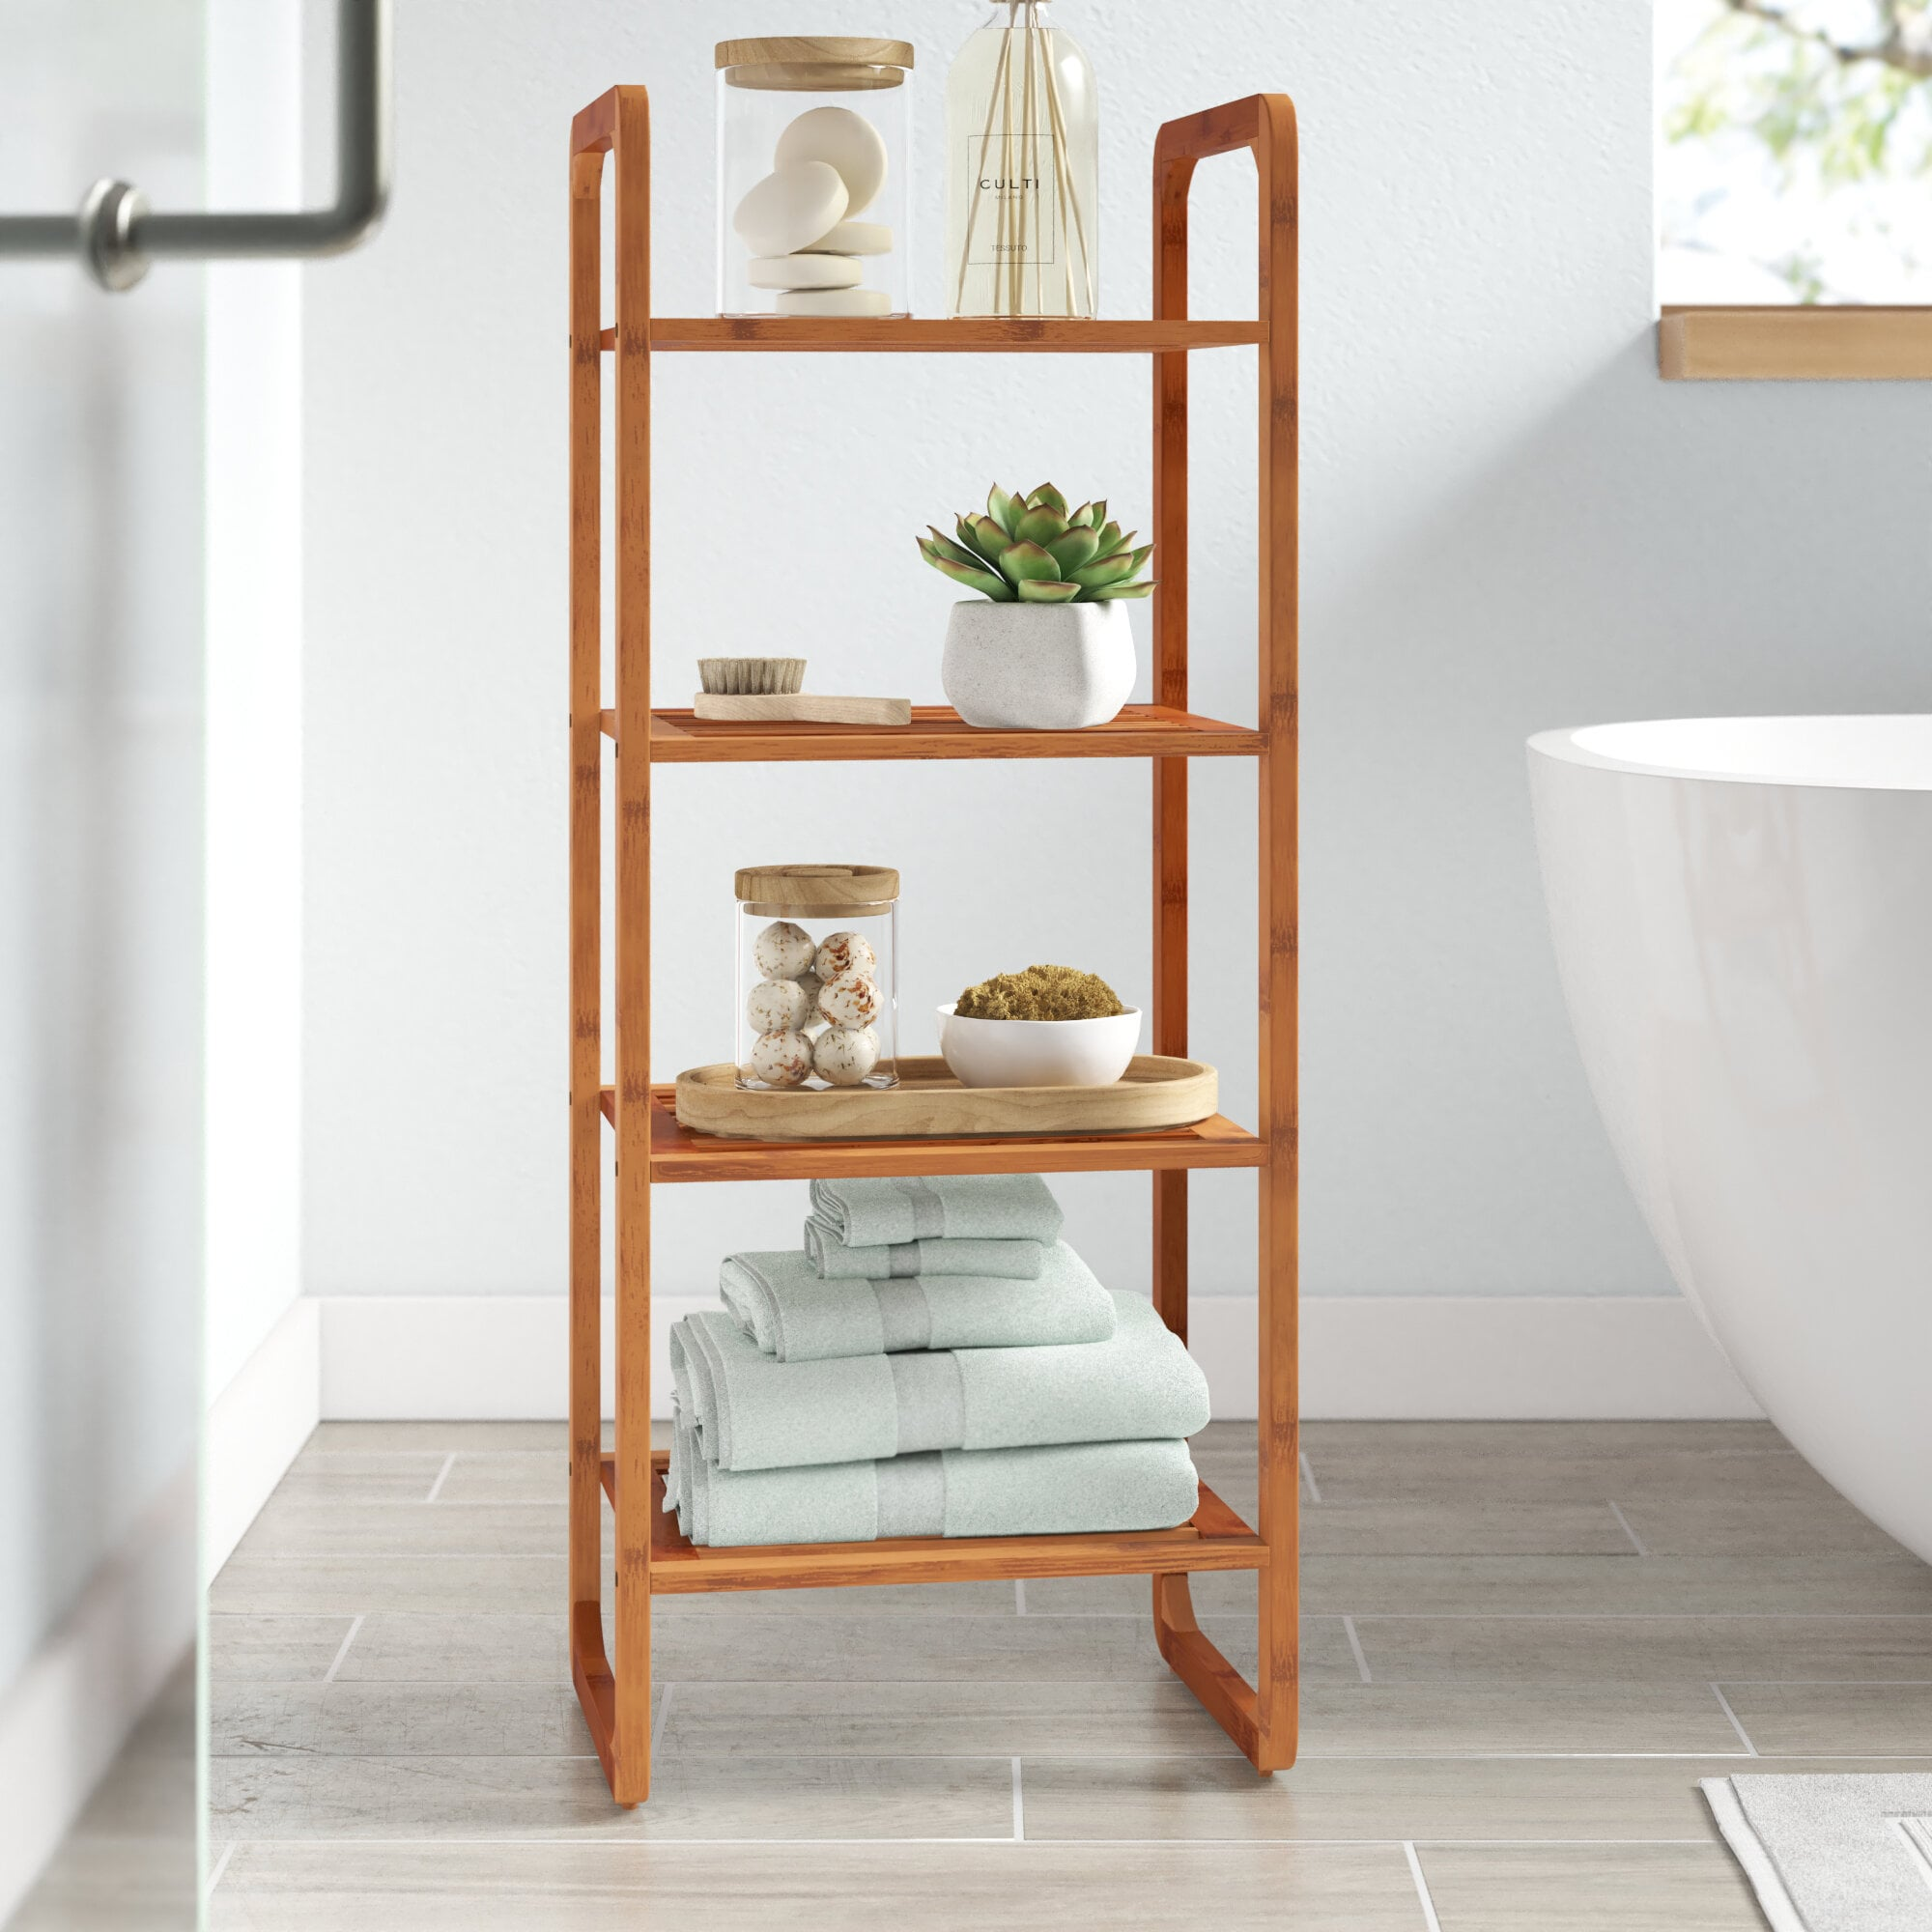 Best Bathroom Storage Products From Wayfair  POPSUGAR Home UK